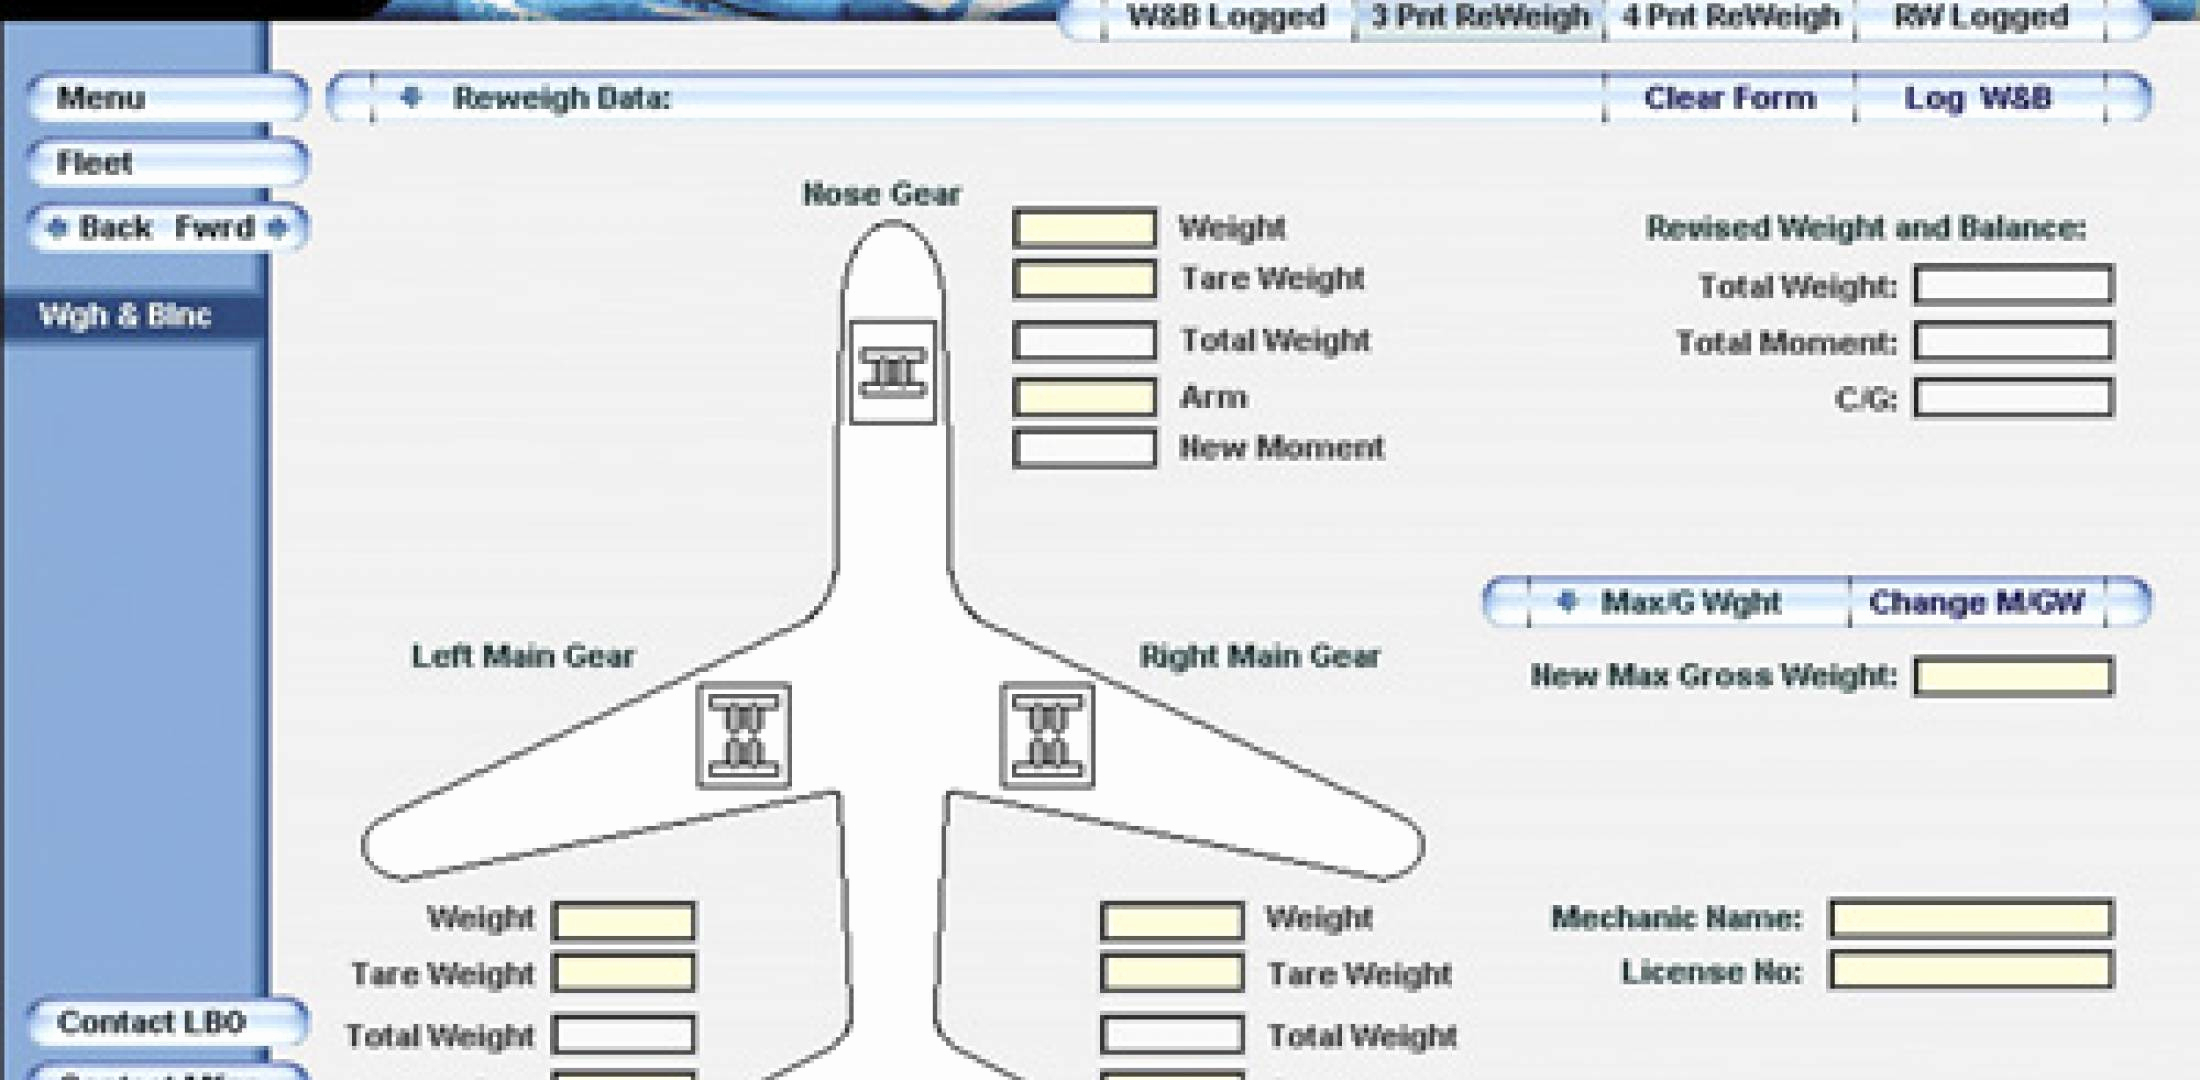 Aircraft Maintenance Spreadsheet Throughout Aircraft Maintenance Tracking Spreadsheet Awesome Maintenance